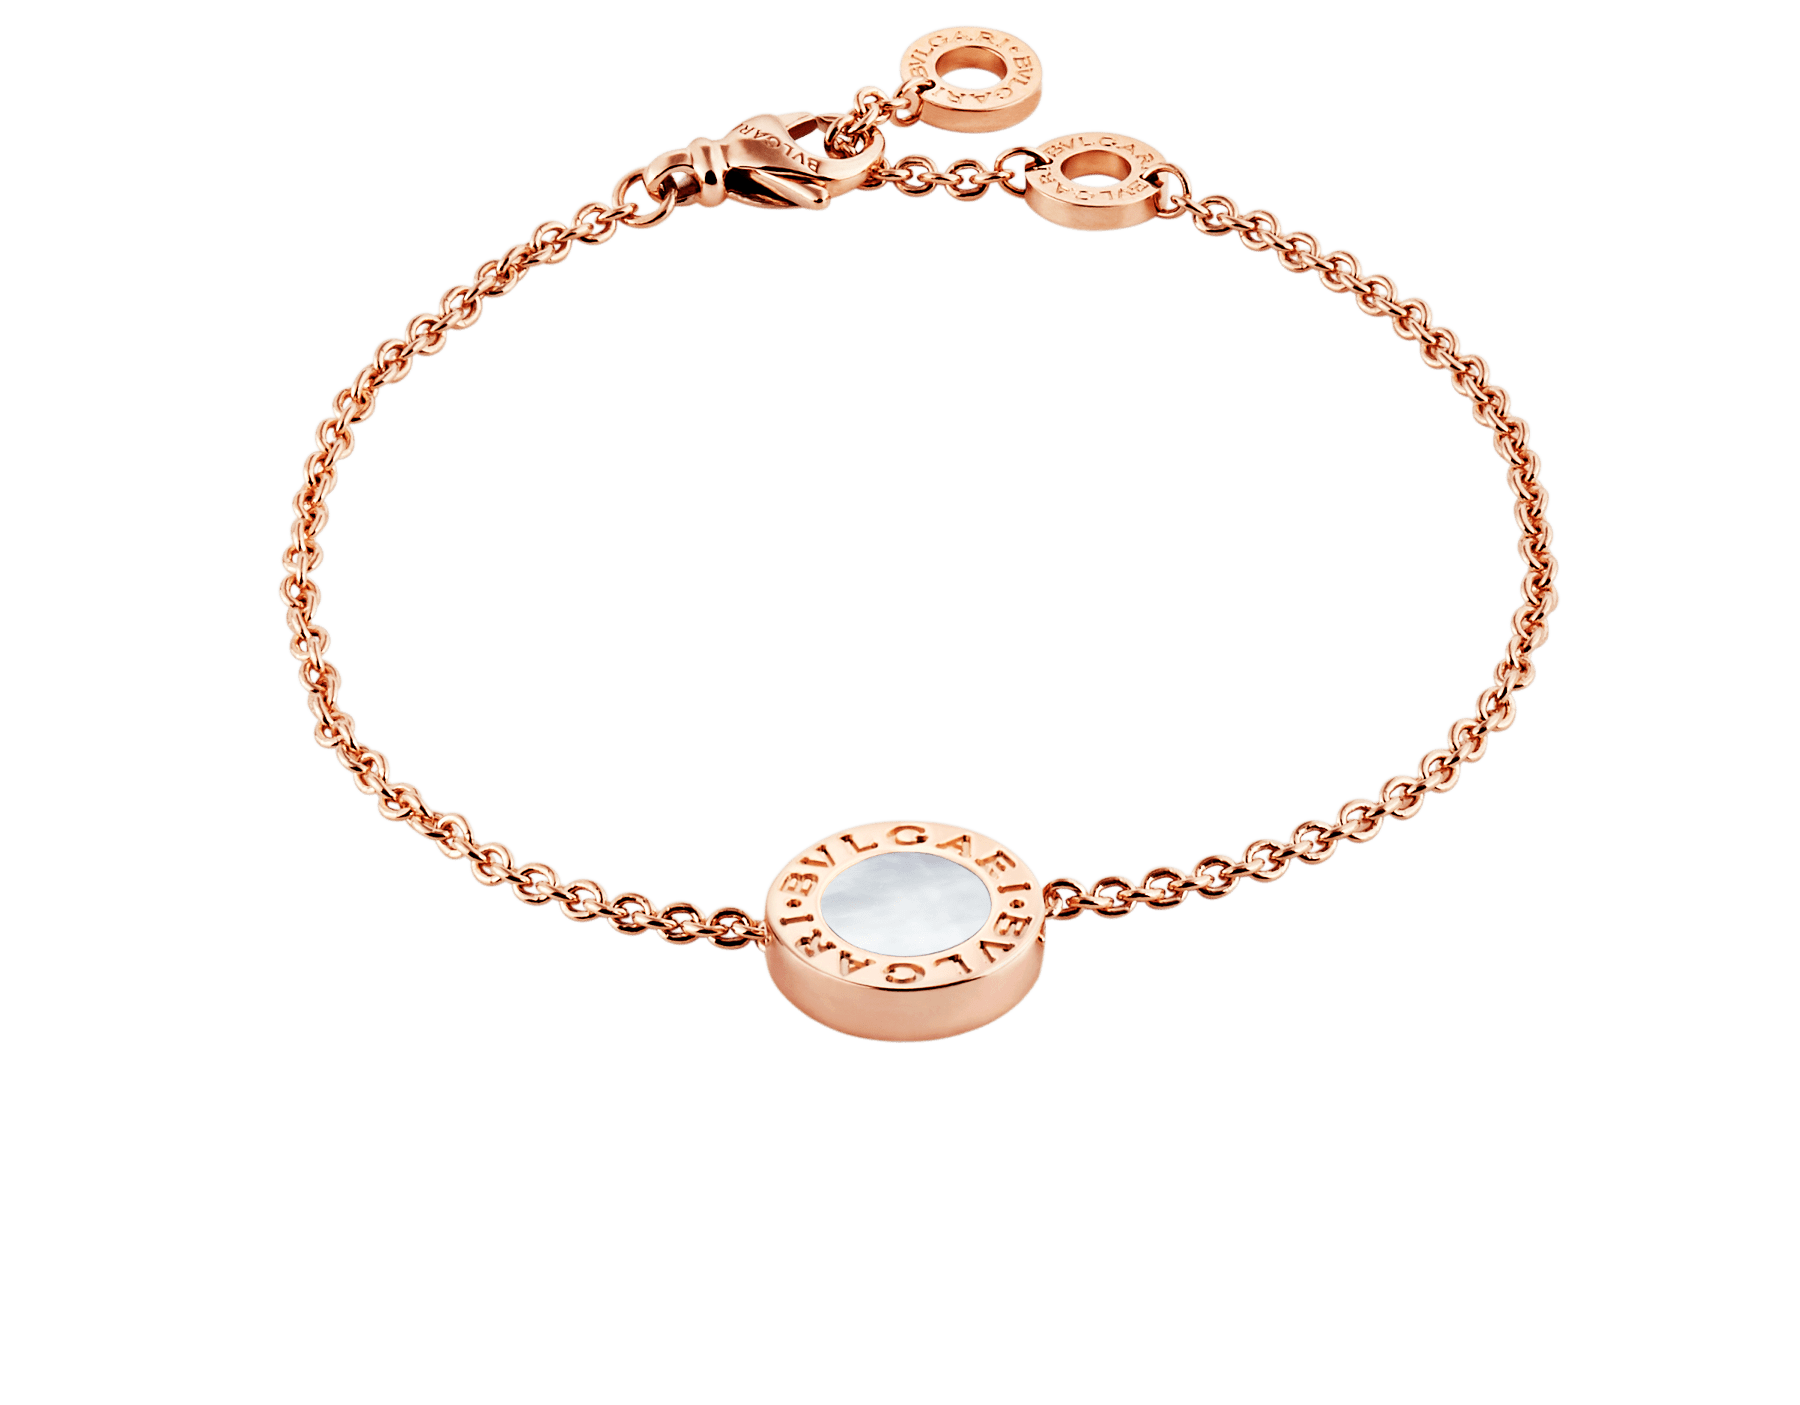 BVLGARI BVLGARI bracelet in 18 kt rose gold set with carnelian and mother-of-pearl round inserts. BR858008 image 3